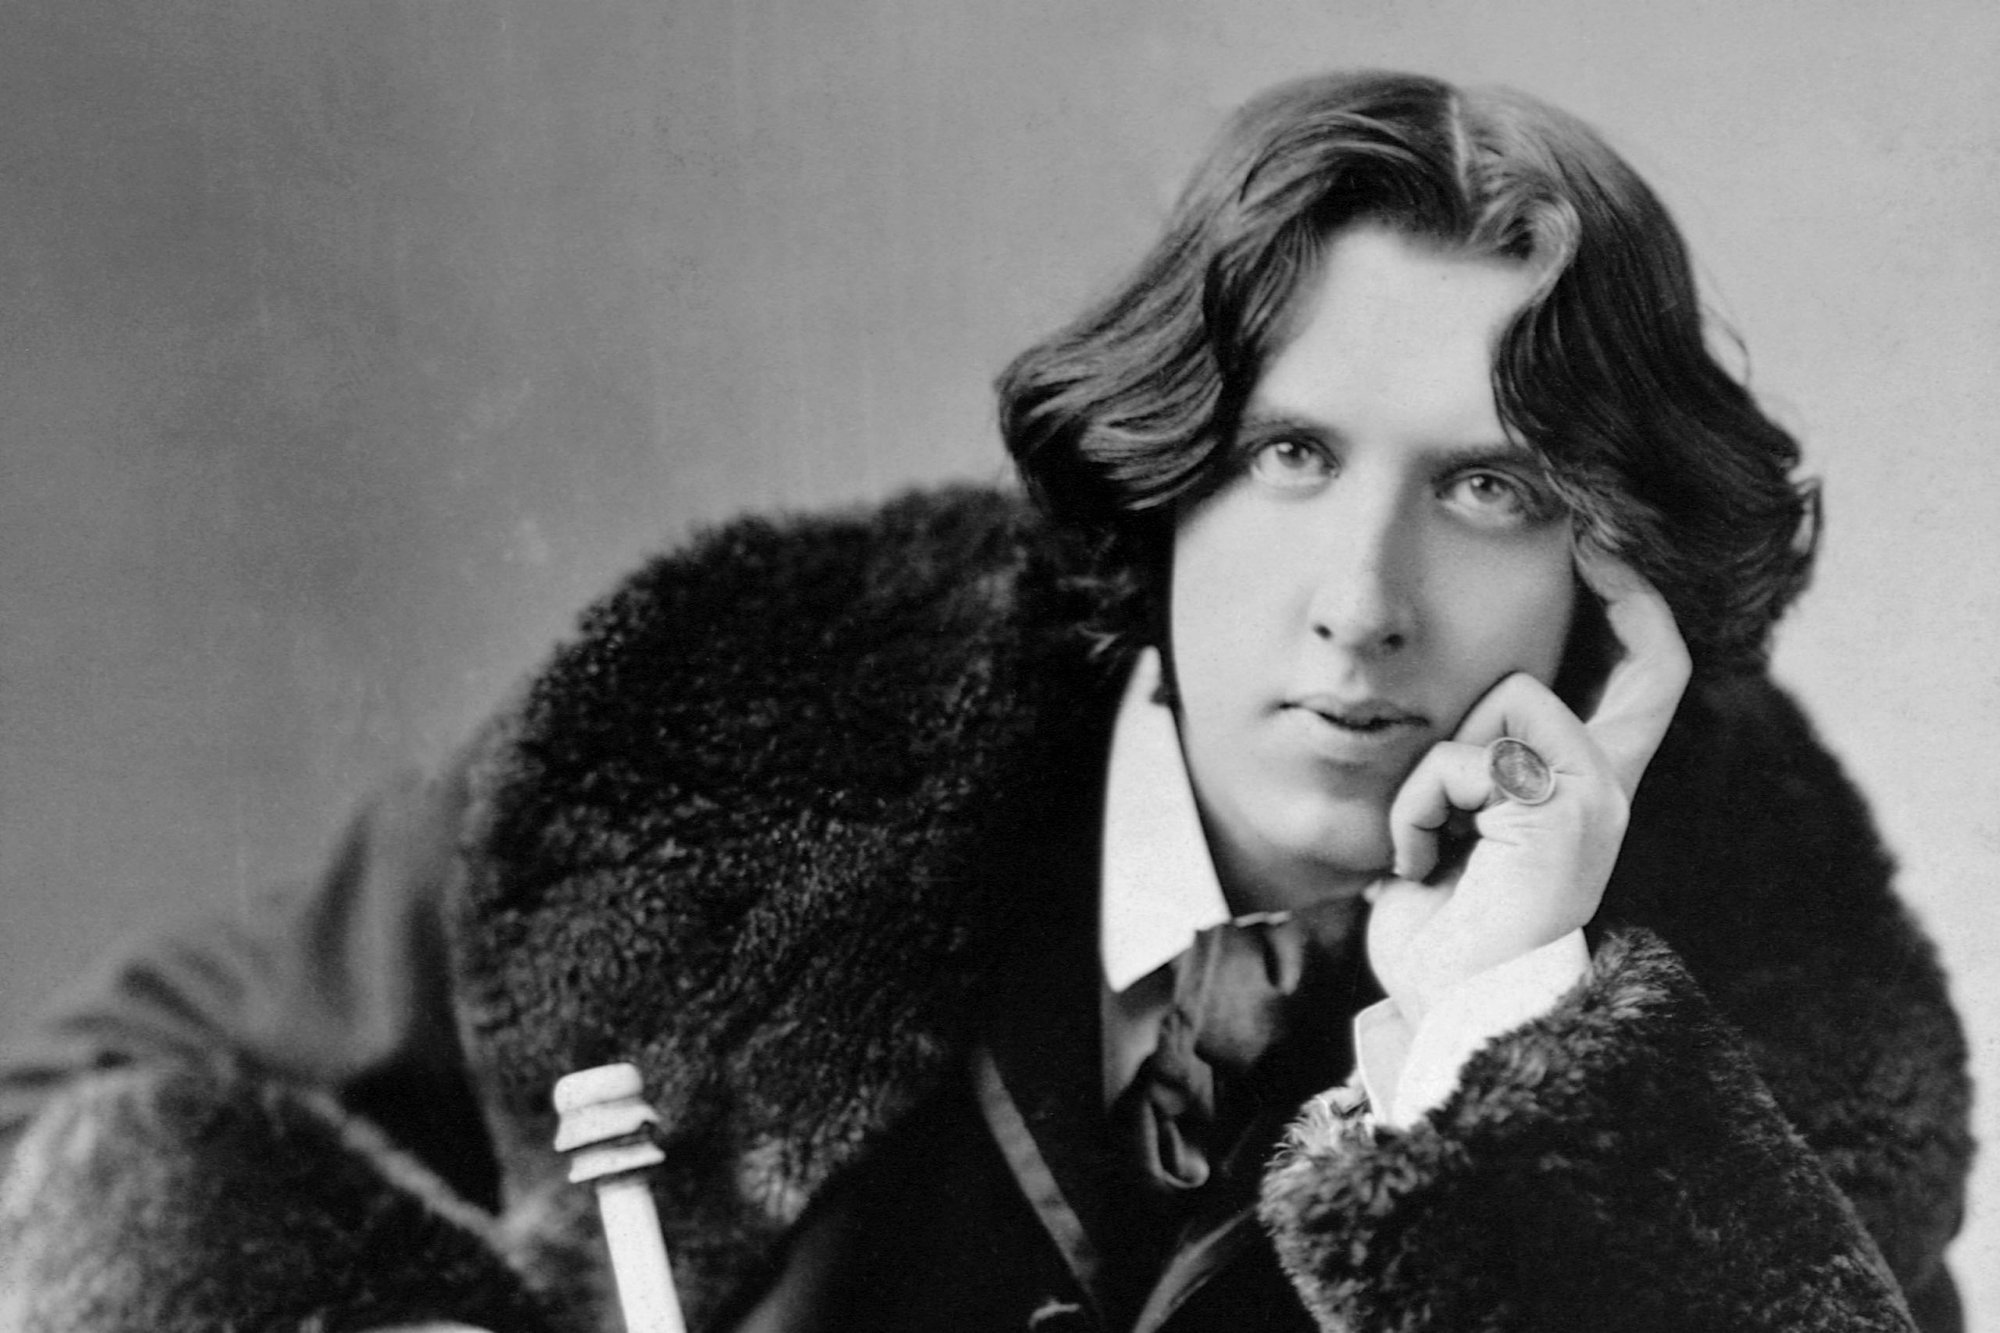 High Quality Oscar Wilde Wallpaper Full HD Pictures 2000x1333